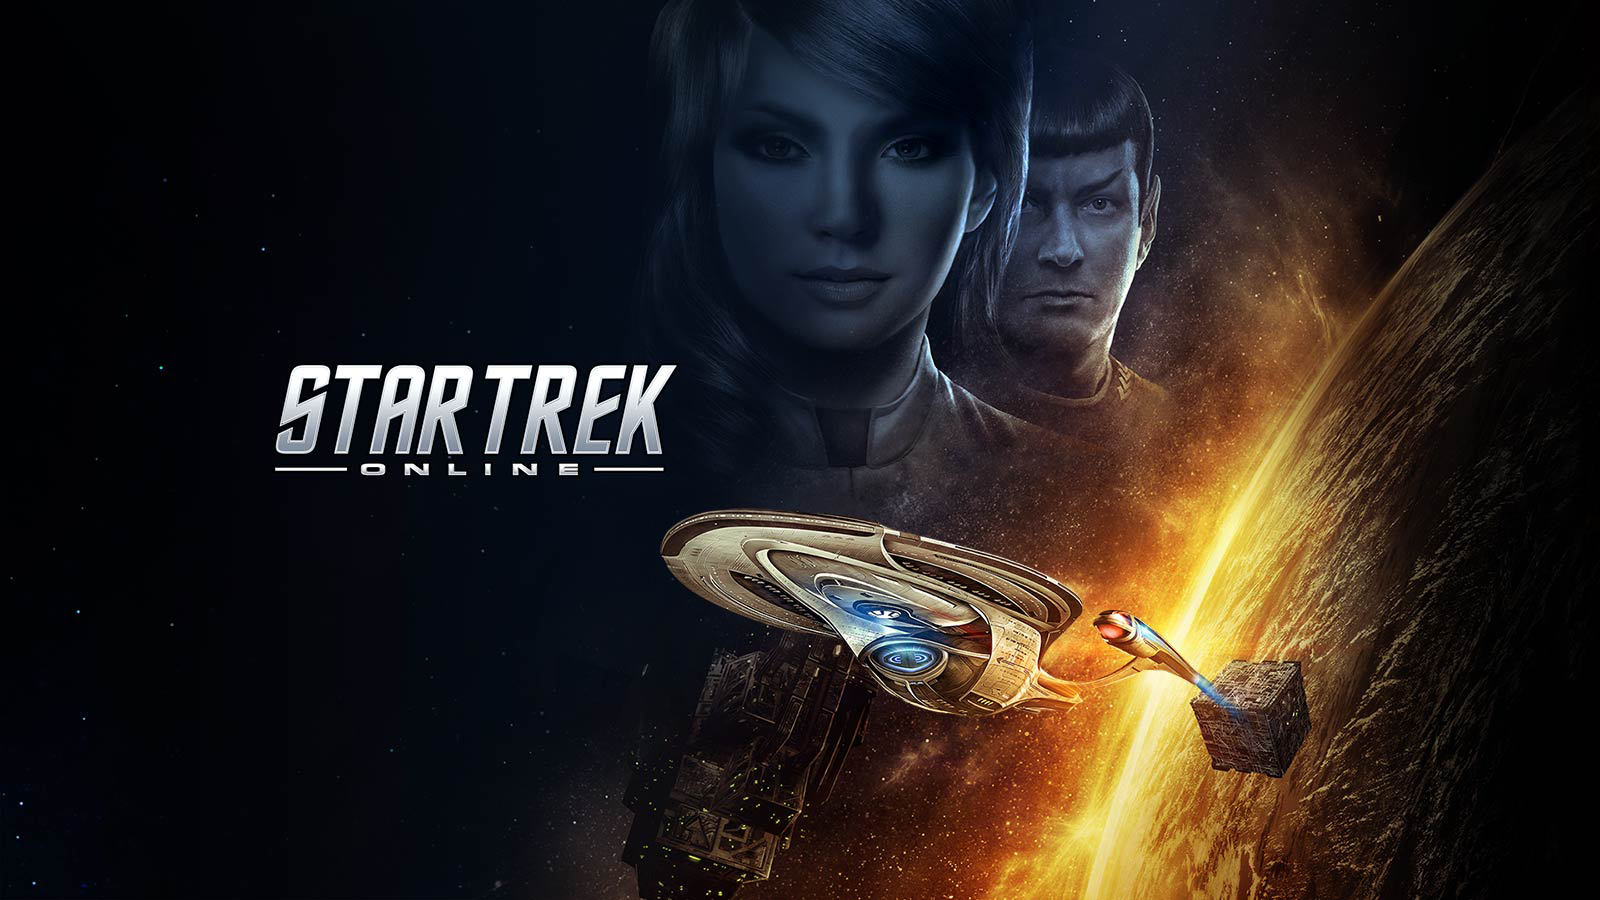 Star trek online season 12 reckoning available today on ps4 xbox one receives new trailer - Star trek online console ...